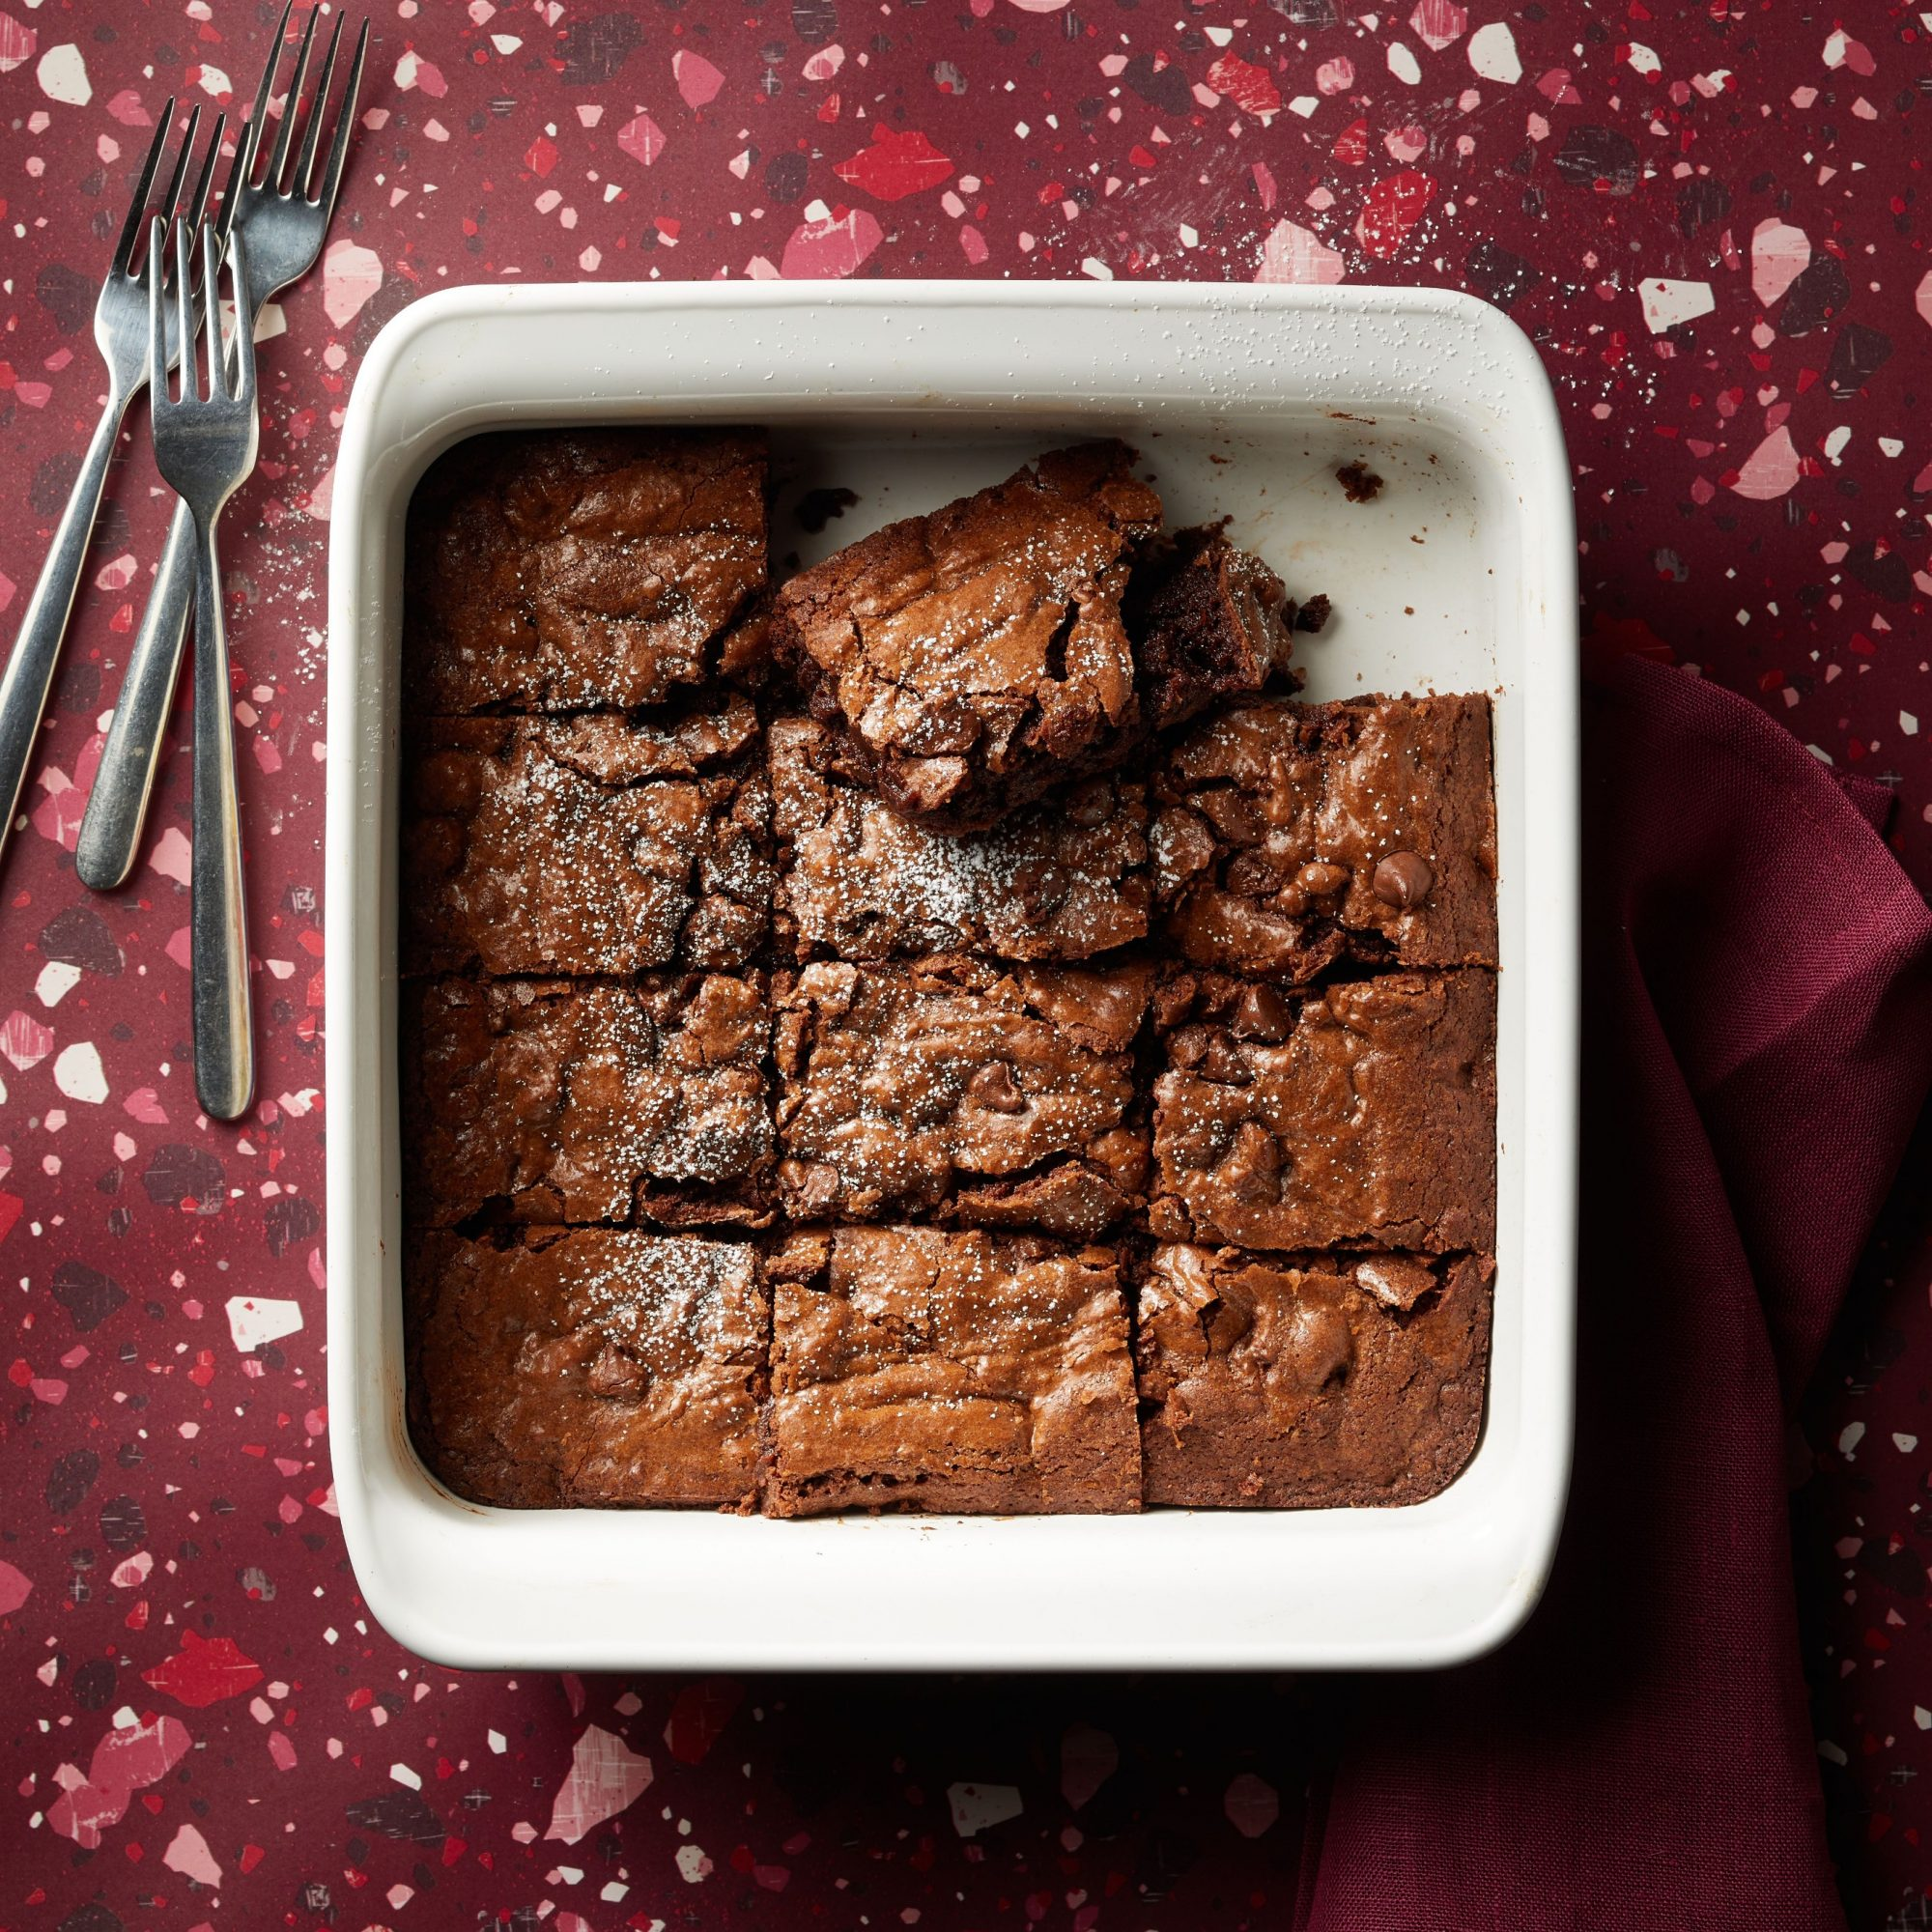 Brooke's Best Bombshell Brownies in a square white casserole dish